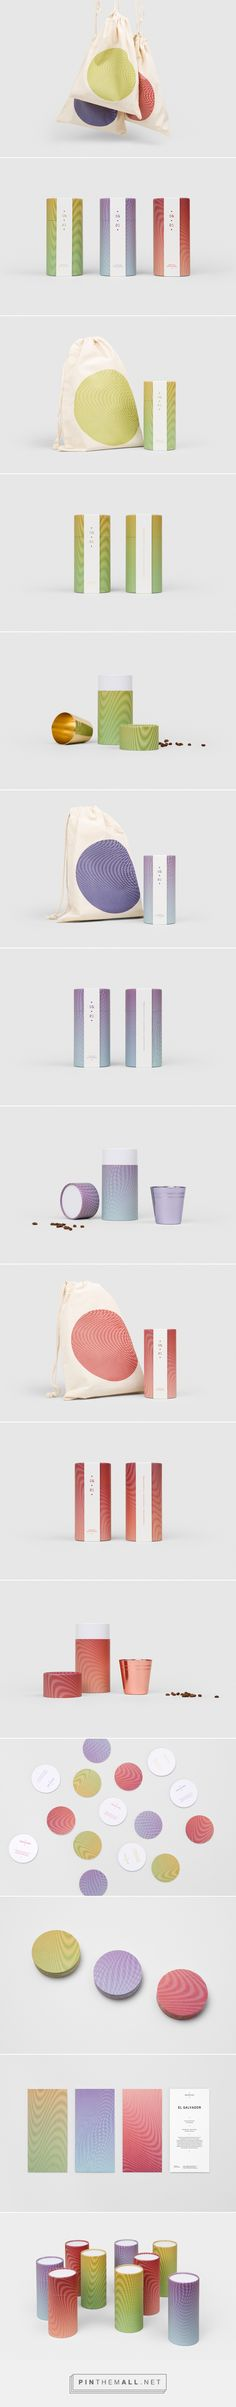 Square One Coffee Roasters by Pop & Pac